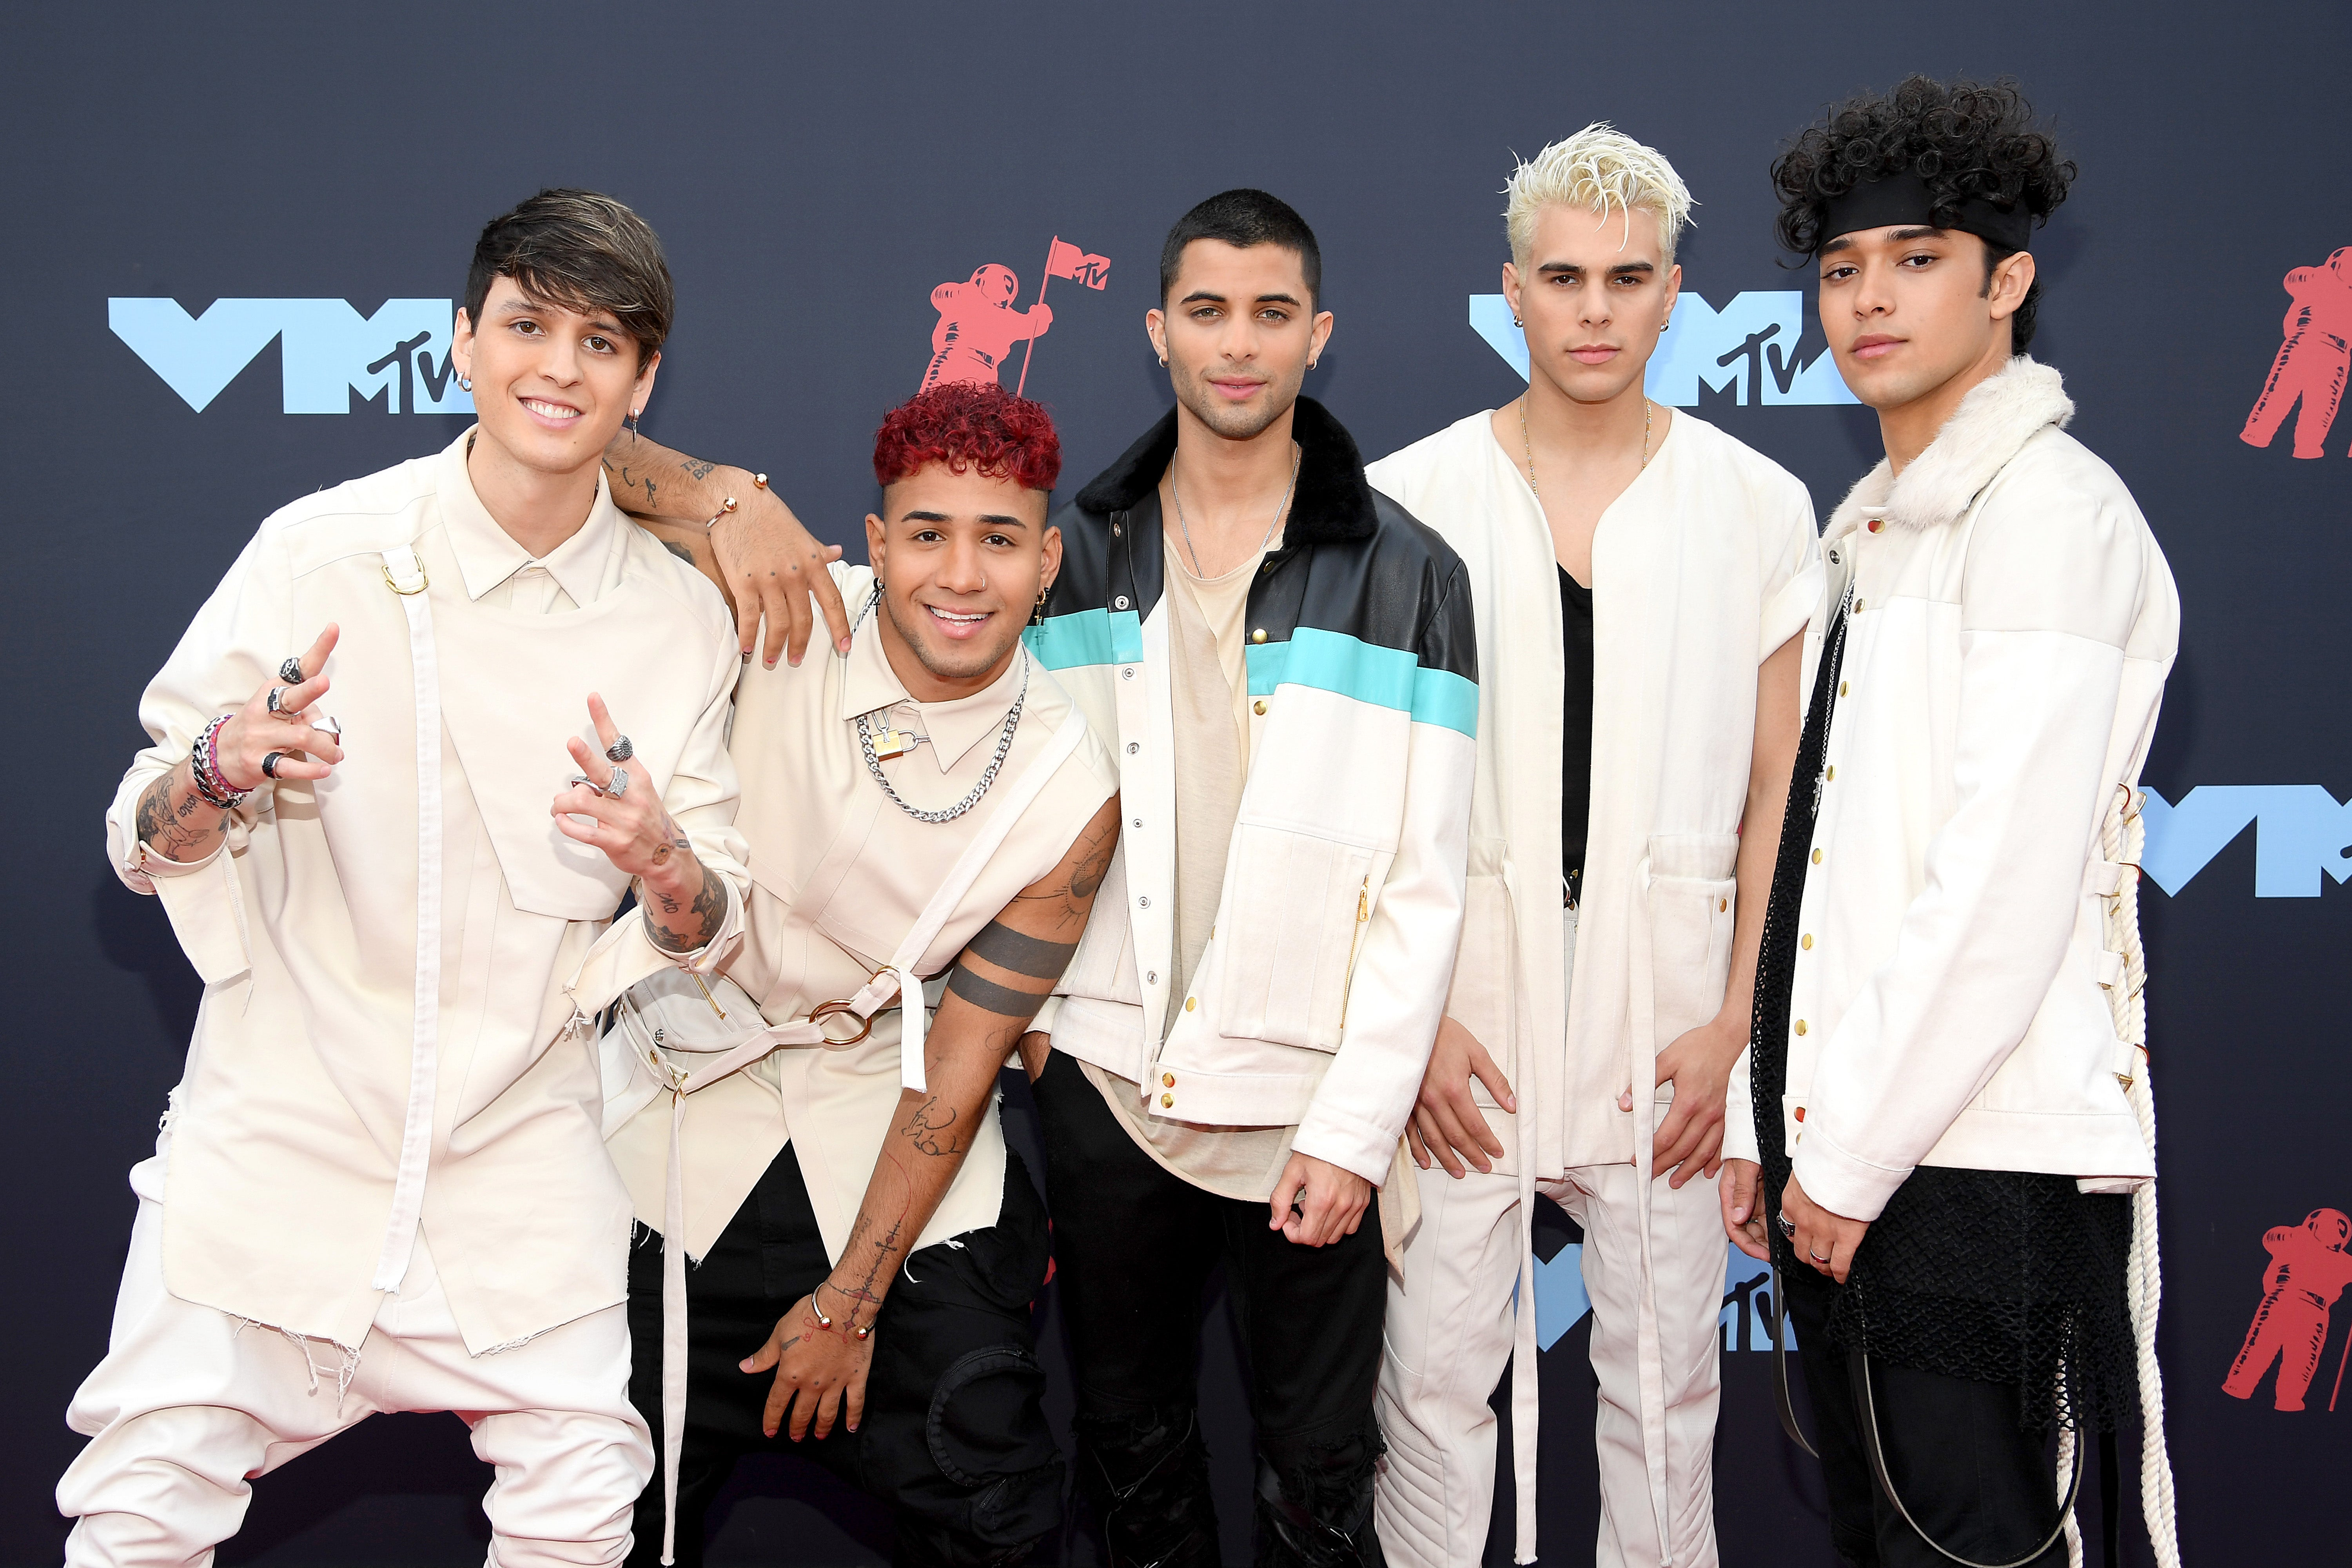 CNCO to Make Special Appearance at Hispanicize 2019 (Exclusive)